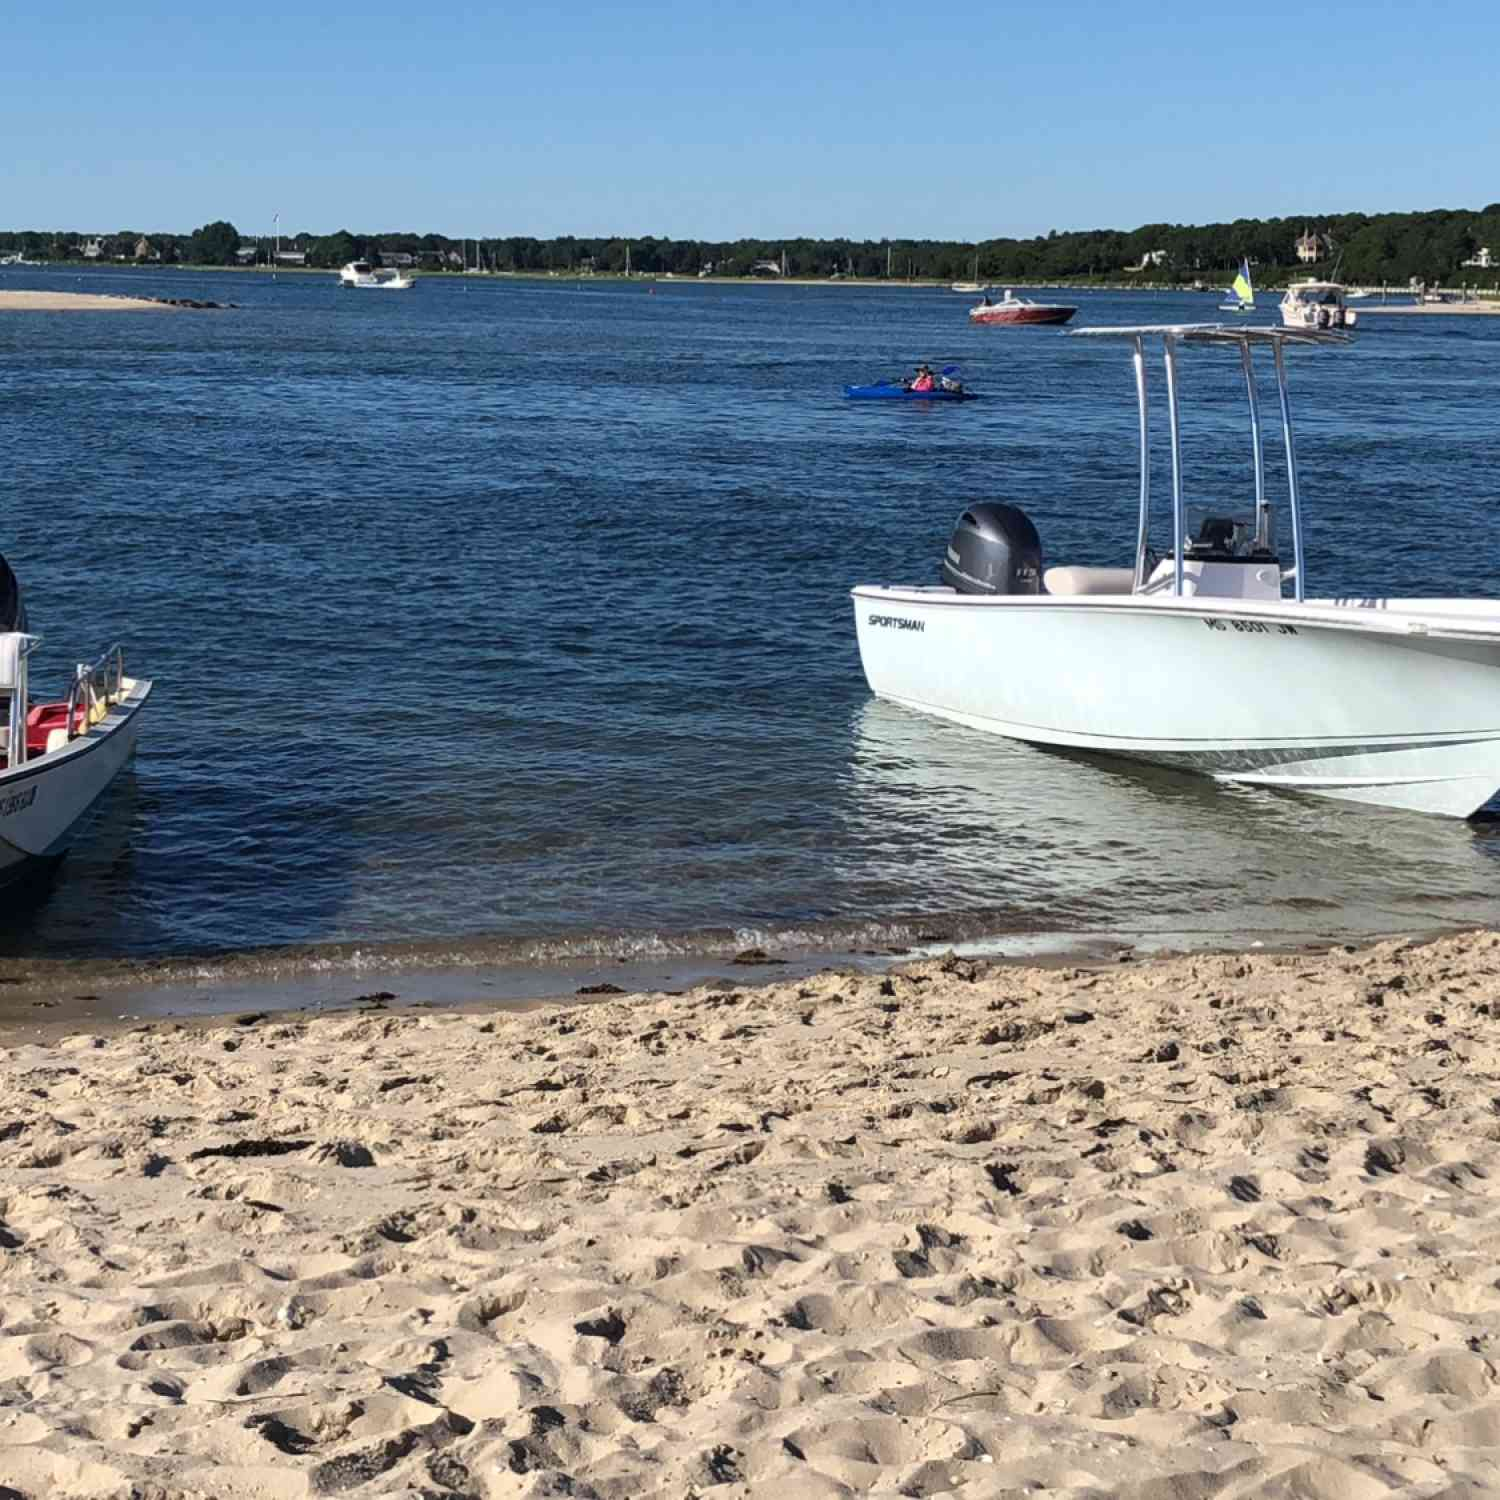 Title: Beach days - On board their Sportsman Island Reef 19 Center Console - Location: Osterville, Massachusetts. Participating in the Photo Contest #SportsmanJuly2018